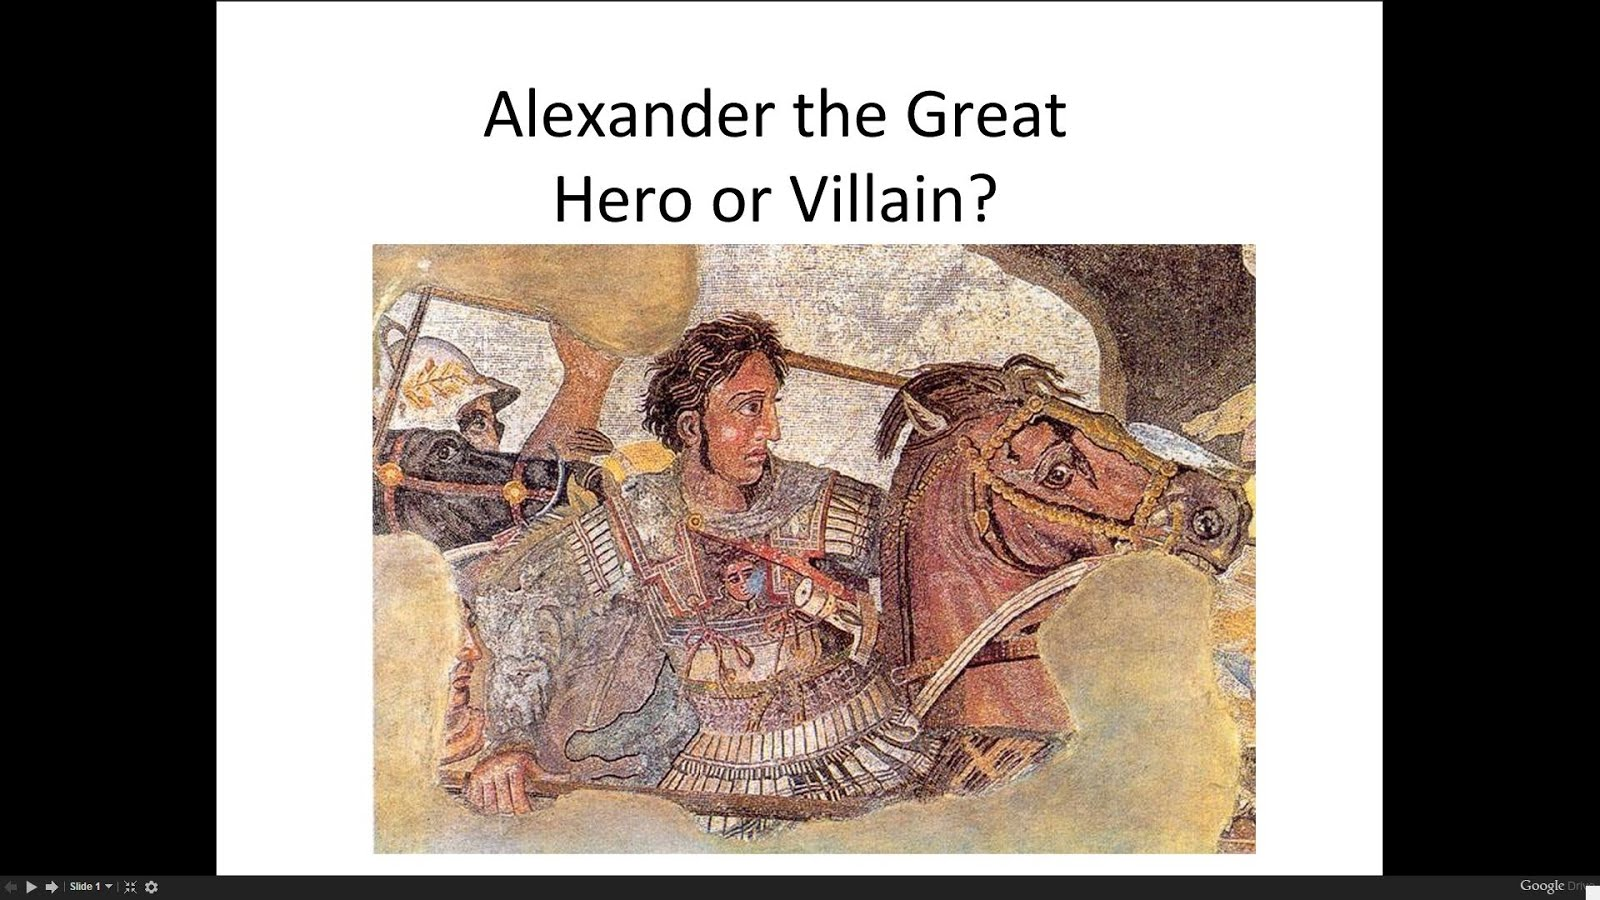 CLICK ON TO VIEW ALEXANDER THE GREAT MATERIALS